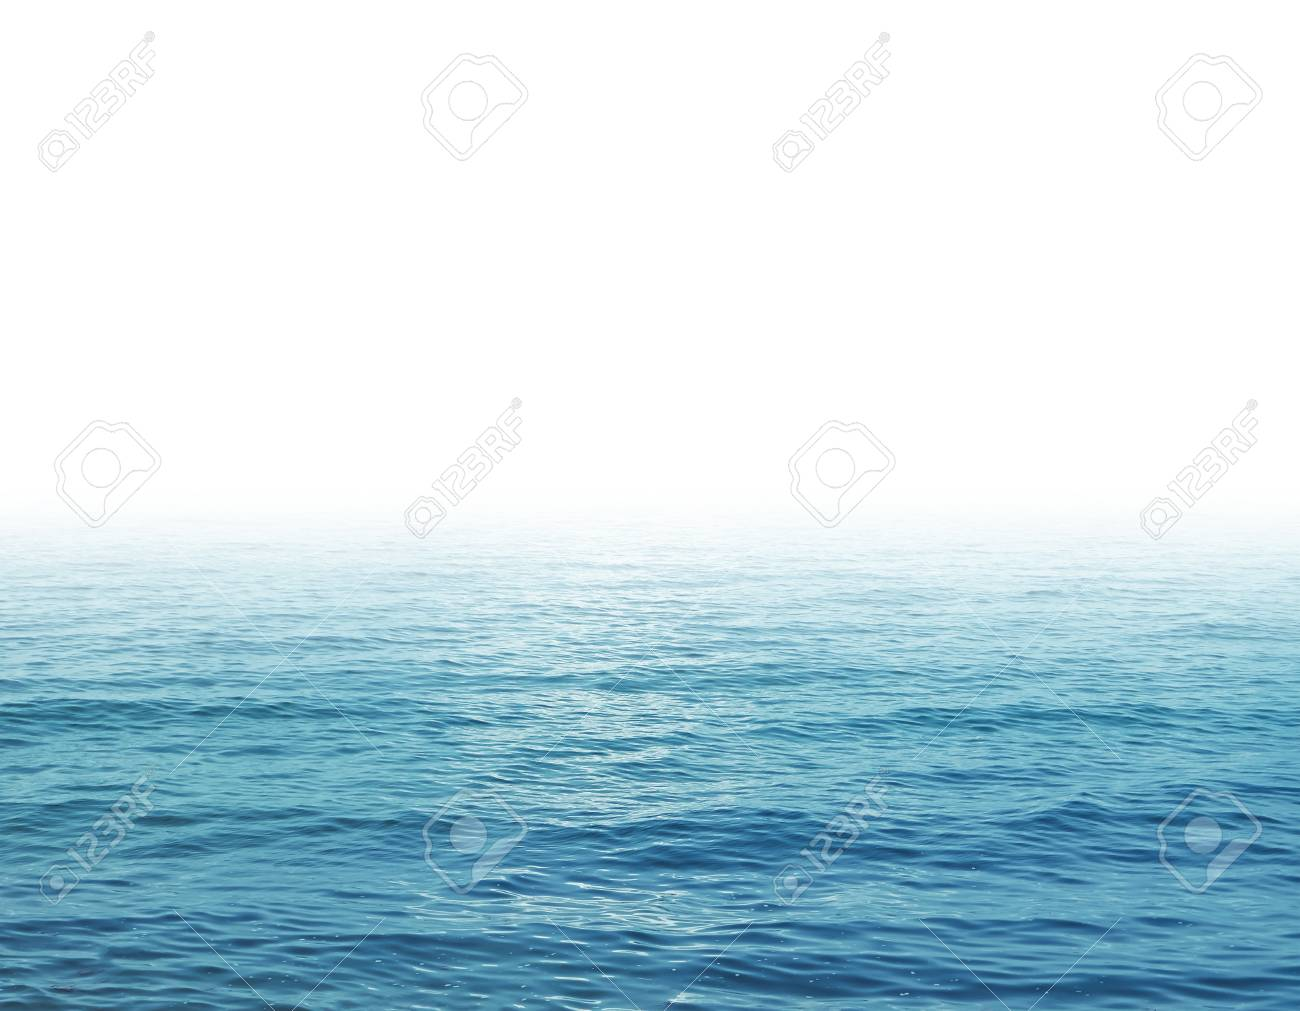 Sea Ocean Waves And White Background Stock Photo Picture And Royalty Free Image Image 99710294